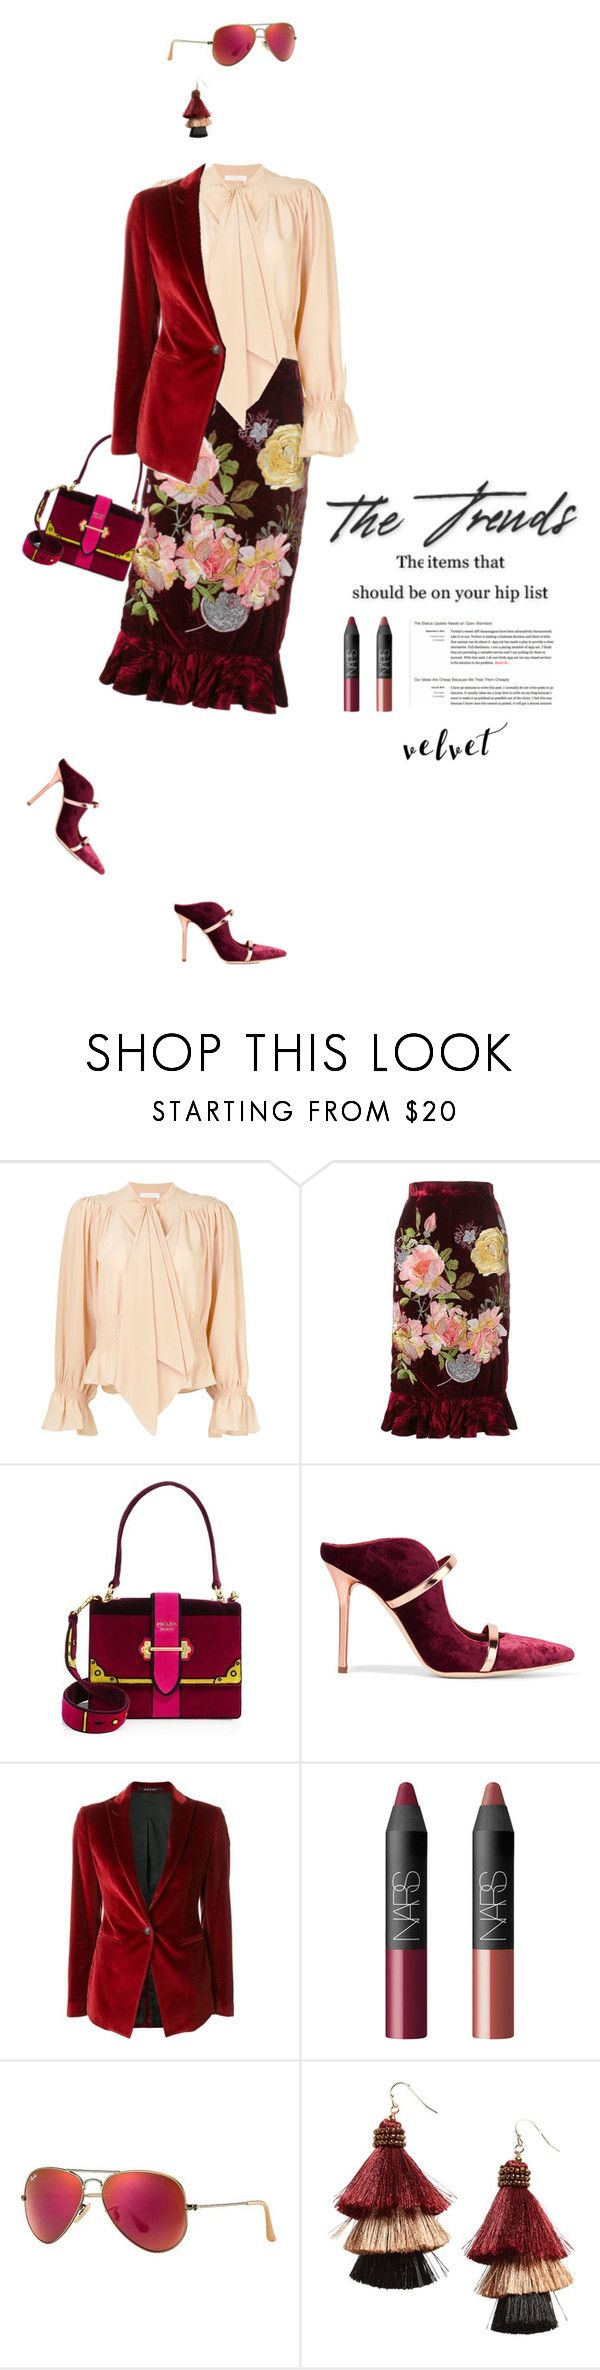 """""""The trends #819"""" by meryflower ❤ liked on Polyvore featuring Chloé, Alice Archer, Prada, Malone Souliers, Tagliatore, NARS Cosmetics, Ray-Ban, Panacea and velvet"""